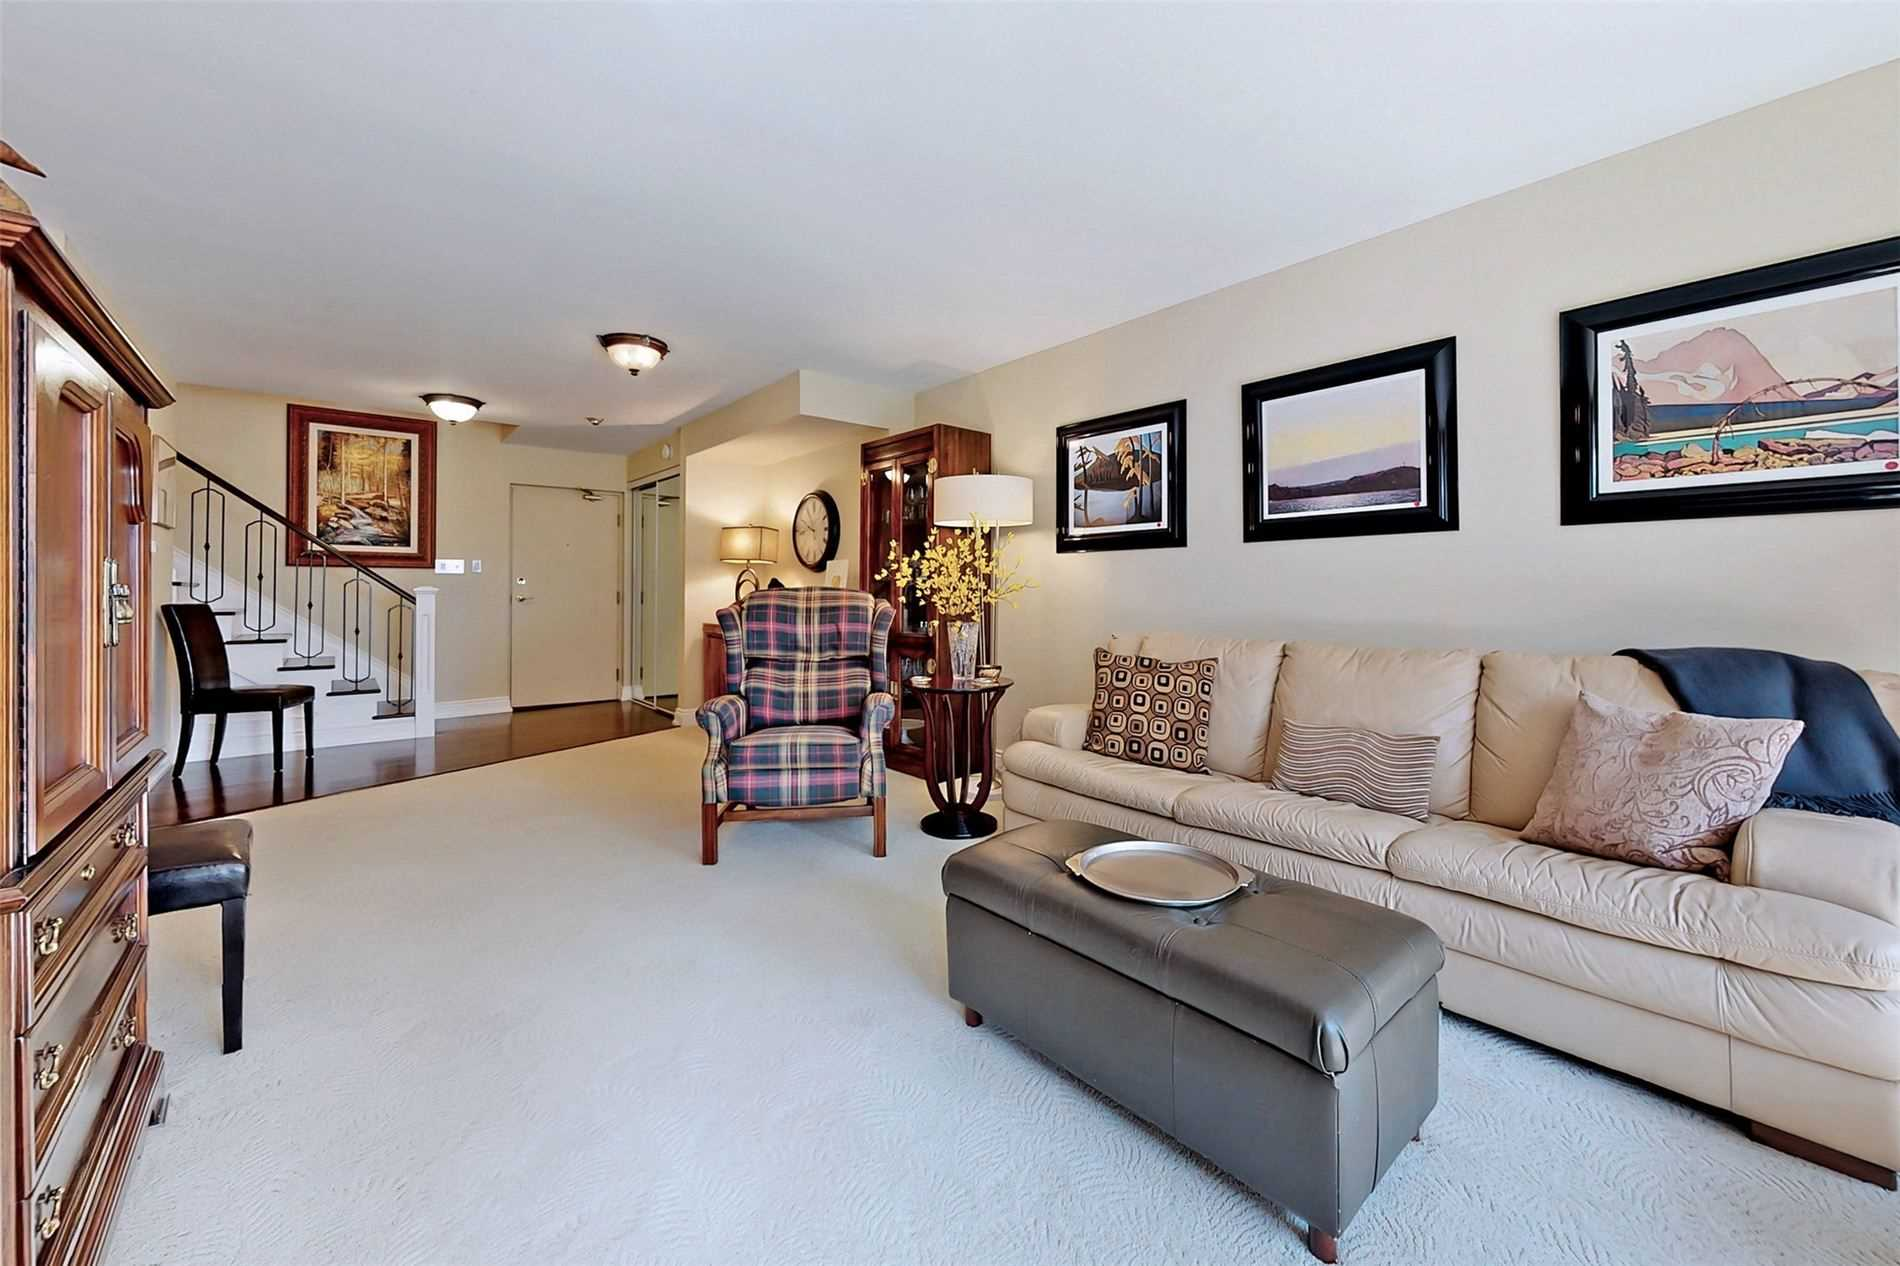 Image 38 of 40 showing inside of 2 Bedroom Condo Apt 2-Storey for Sale at 25 Cumberland Lane Unit# 105, Ajax L1S7K1